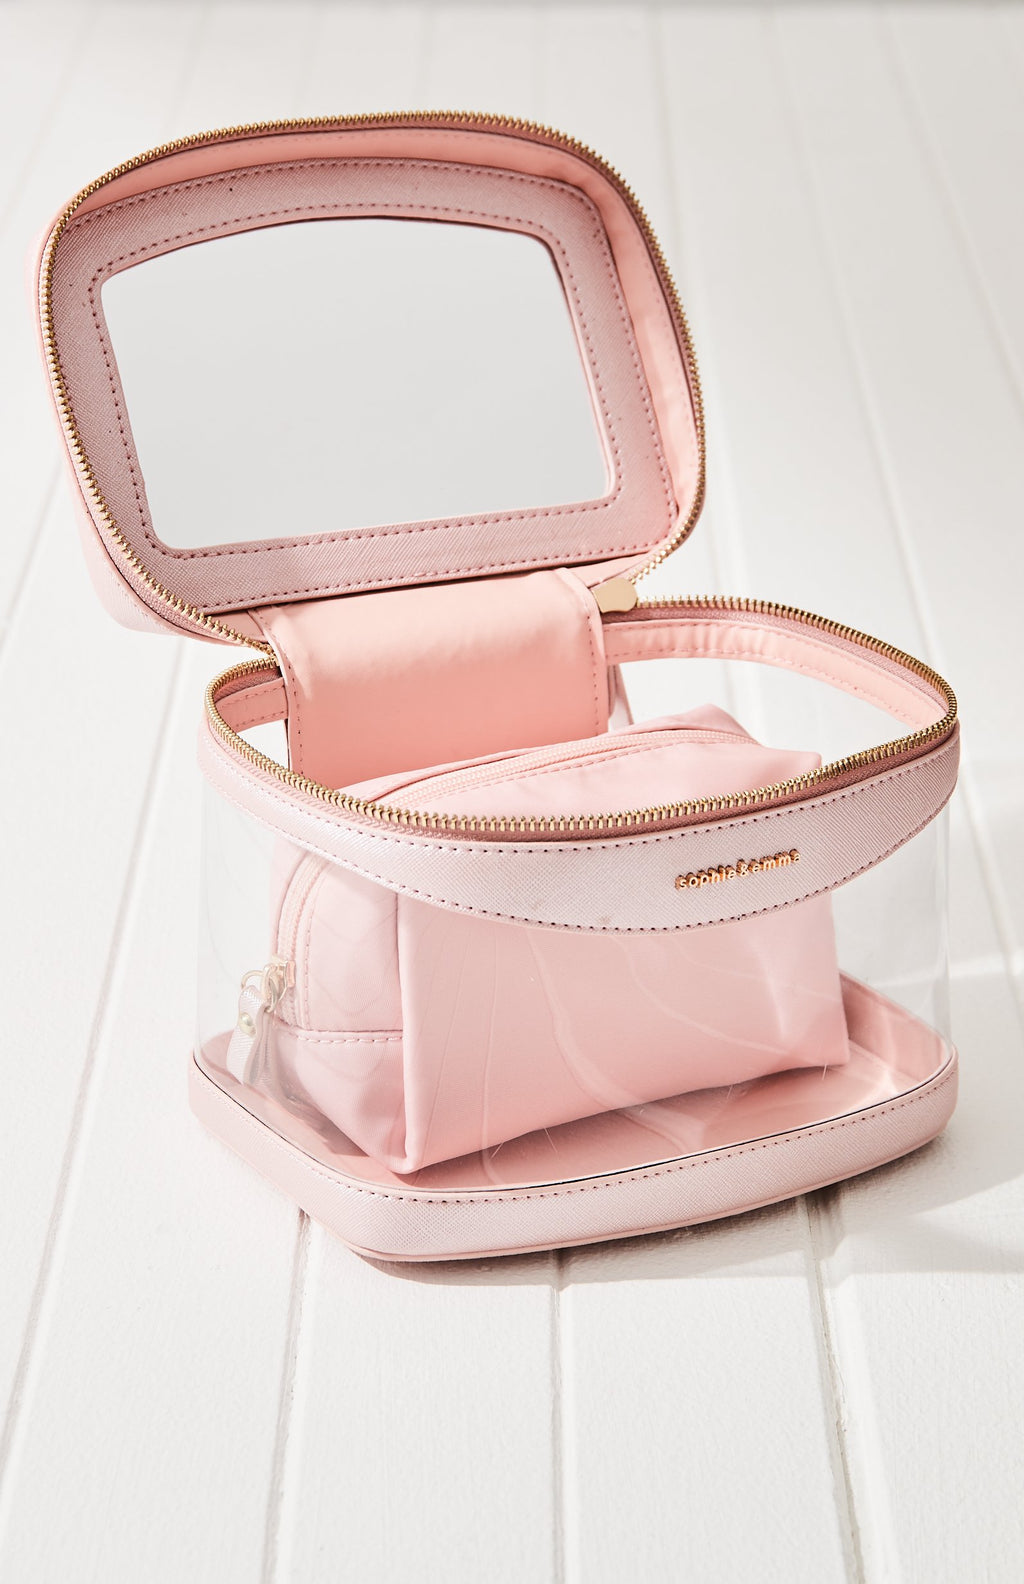 cosmetic bag vegan leather travel vanity case set